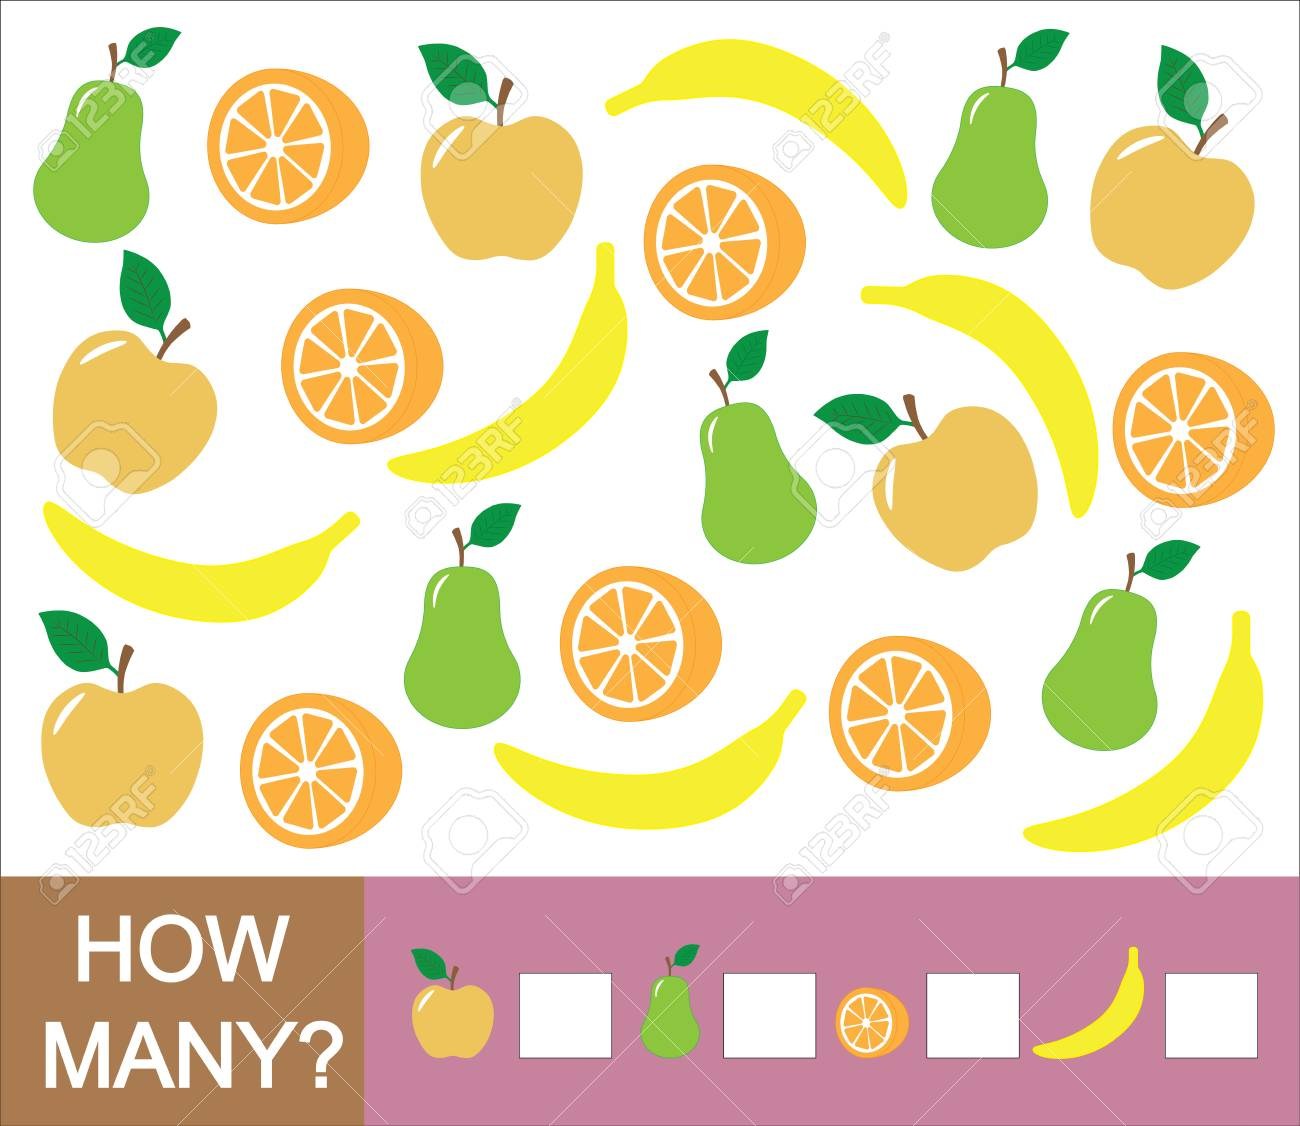 Counting educational game for children. How many fruits (apple, pear, orange, banana). Learning numbers, mathematics. - 91803246